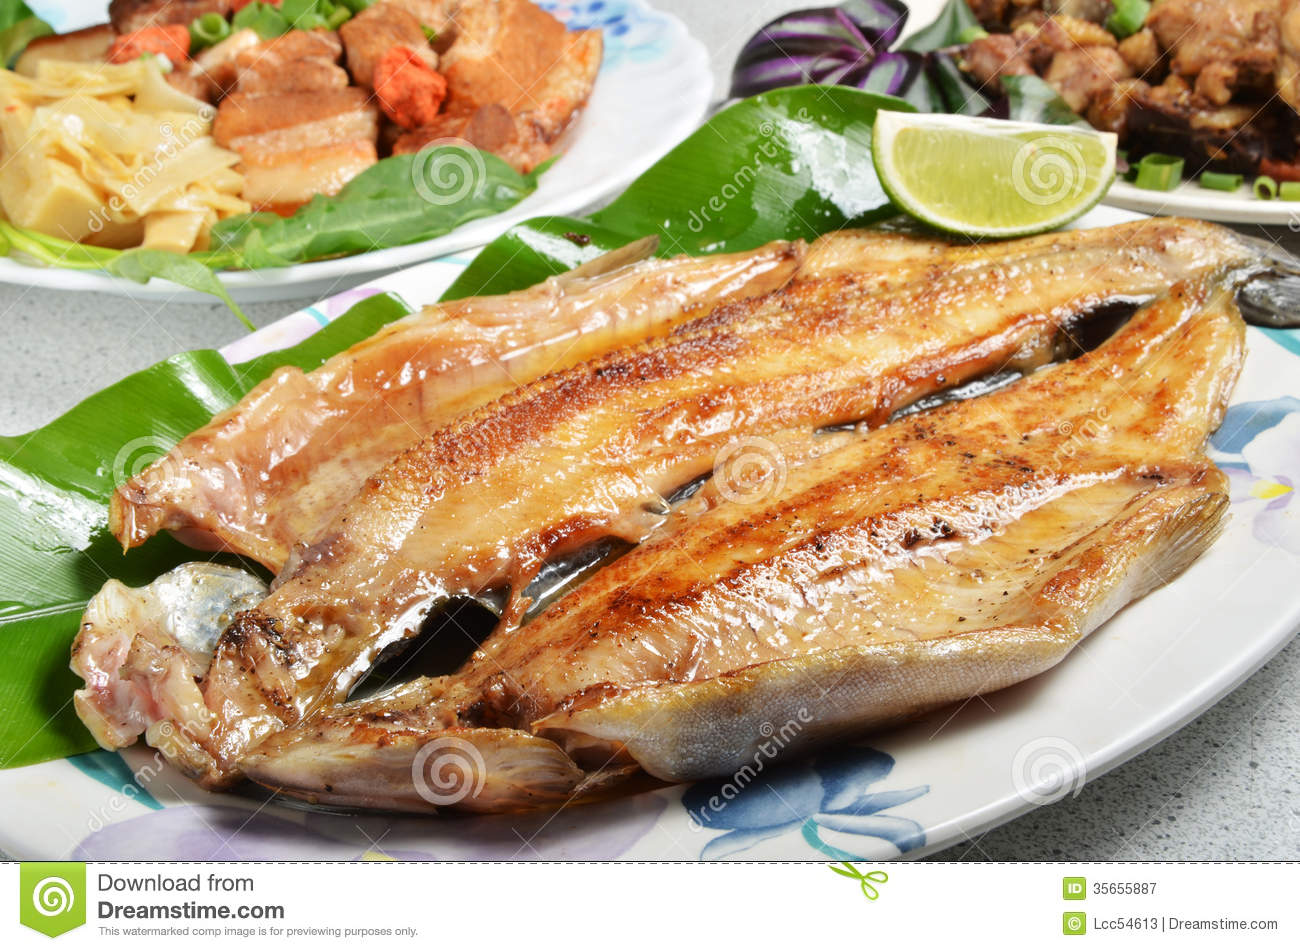 Pan fried trout with lemon on plate.